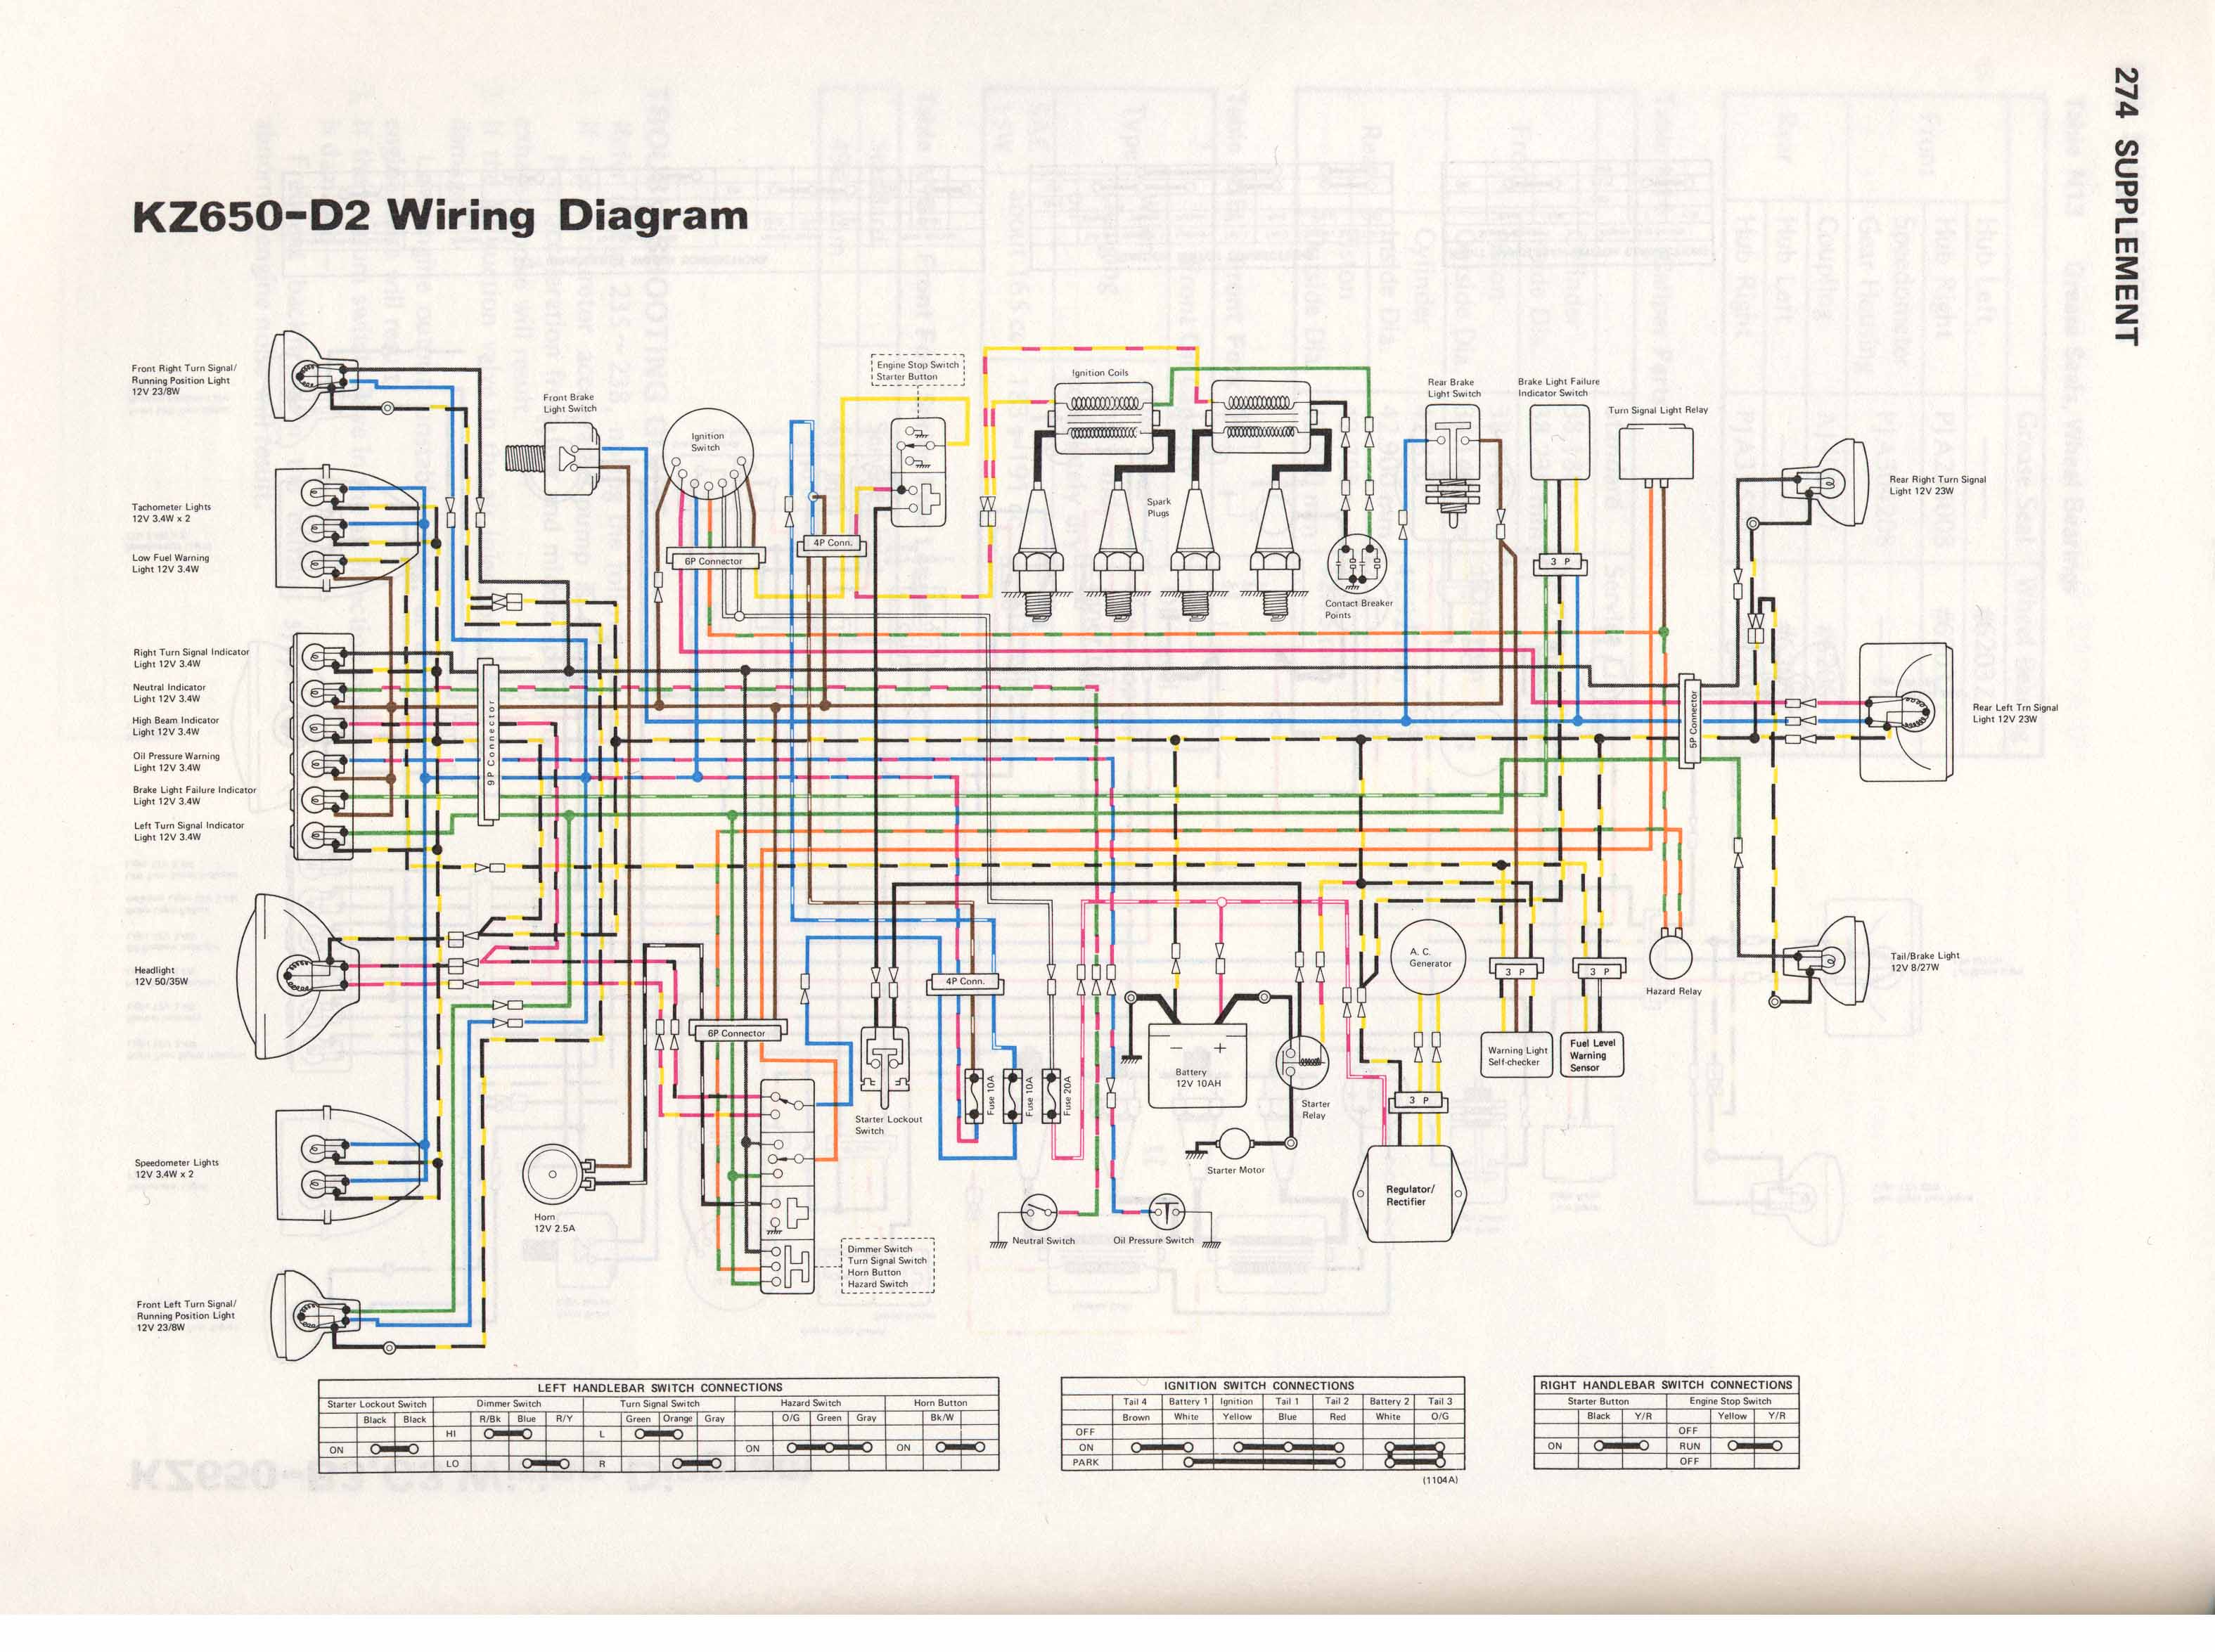 2006 yfz 450 wiring diagram 2 way lighting circuit uk kz650.info - diagrams